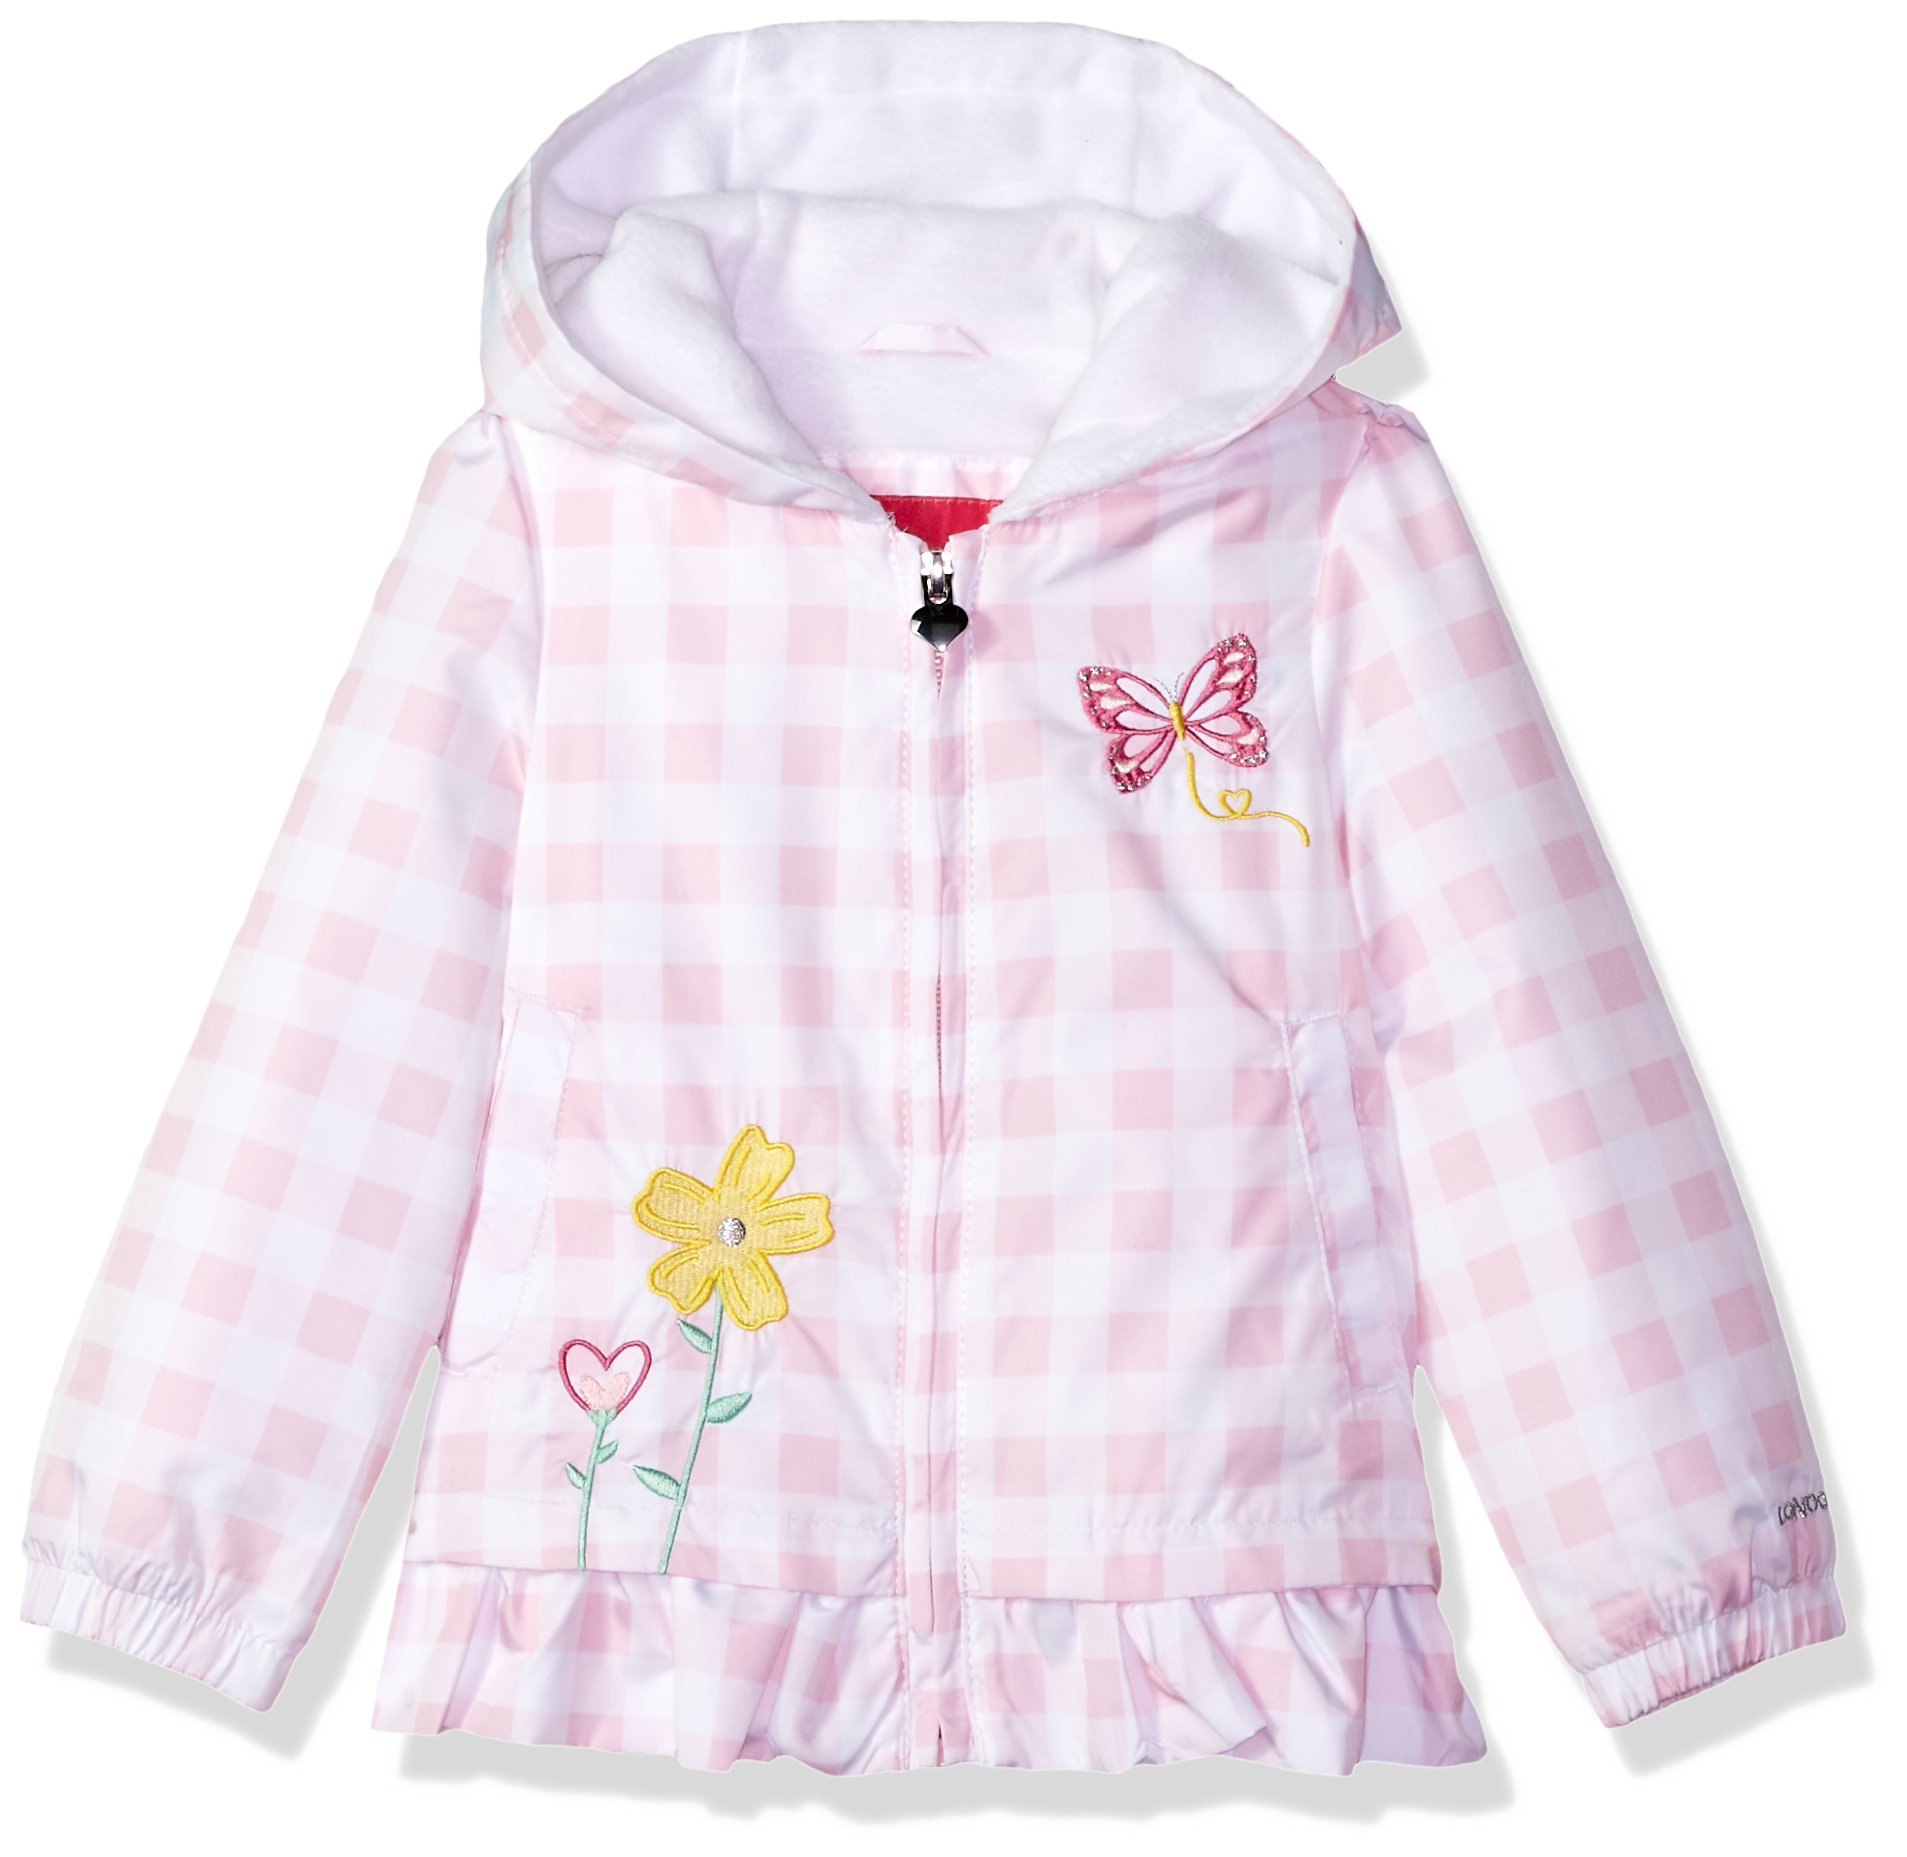 London Fog Toddler Girls' Midweight Fleece Lined Jacket, Pink Gingham, 4T by London Fog